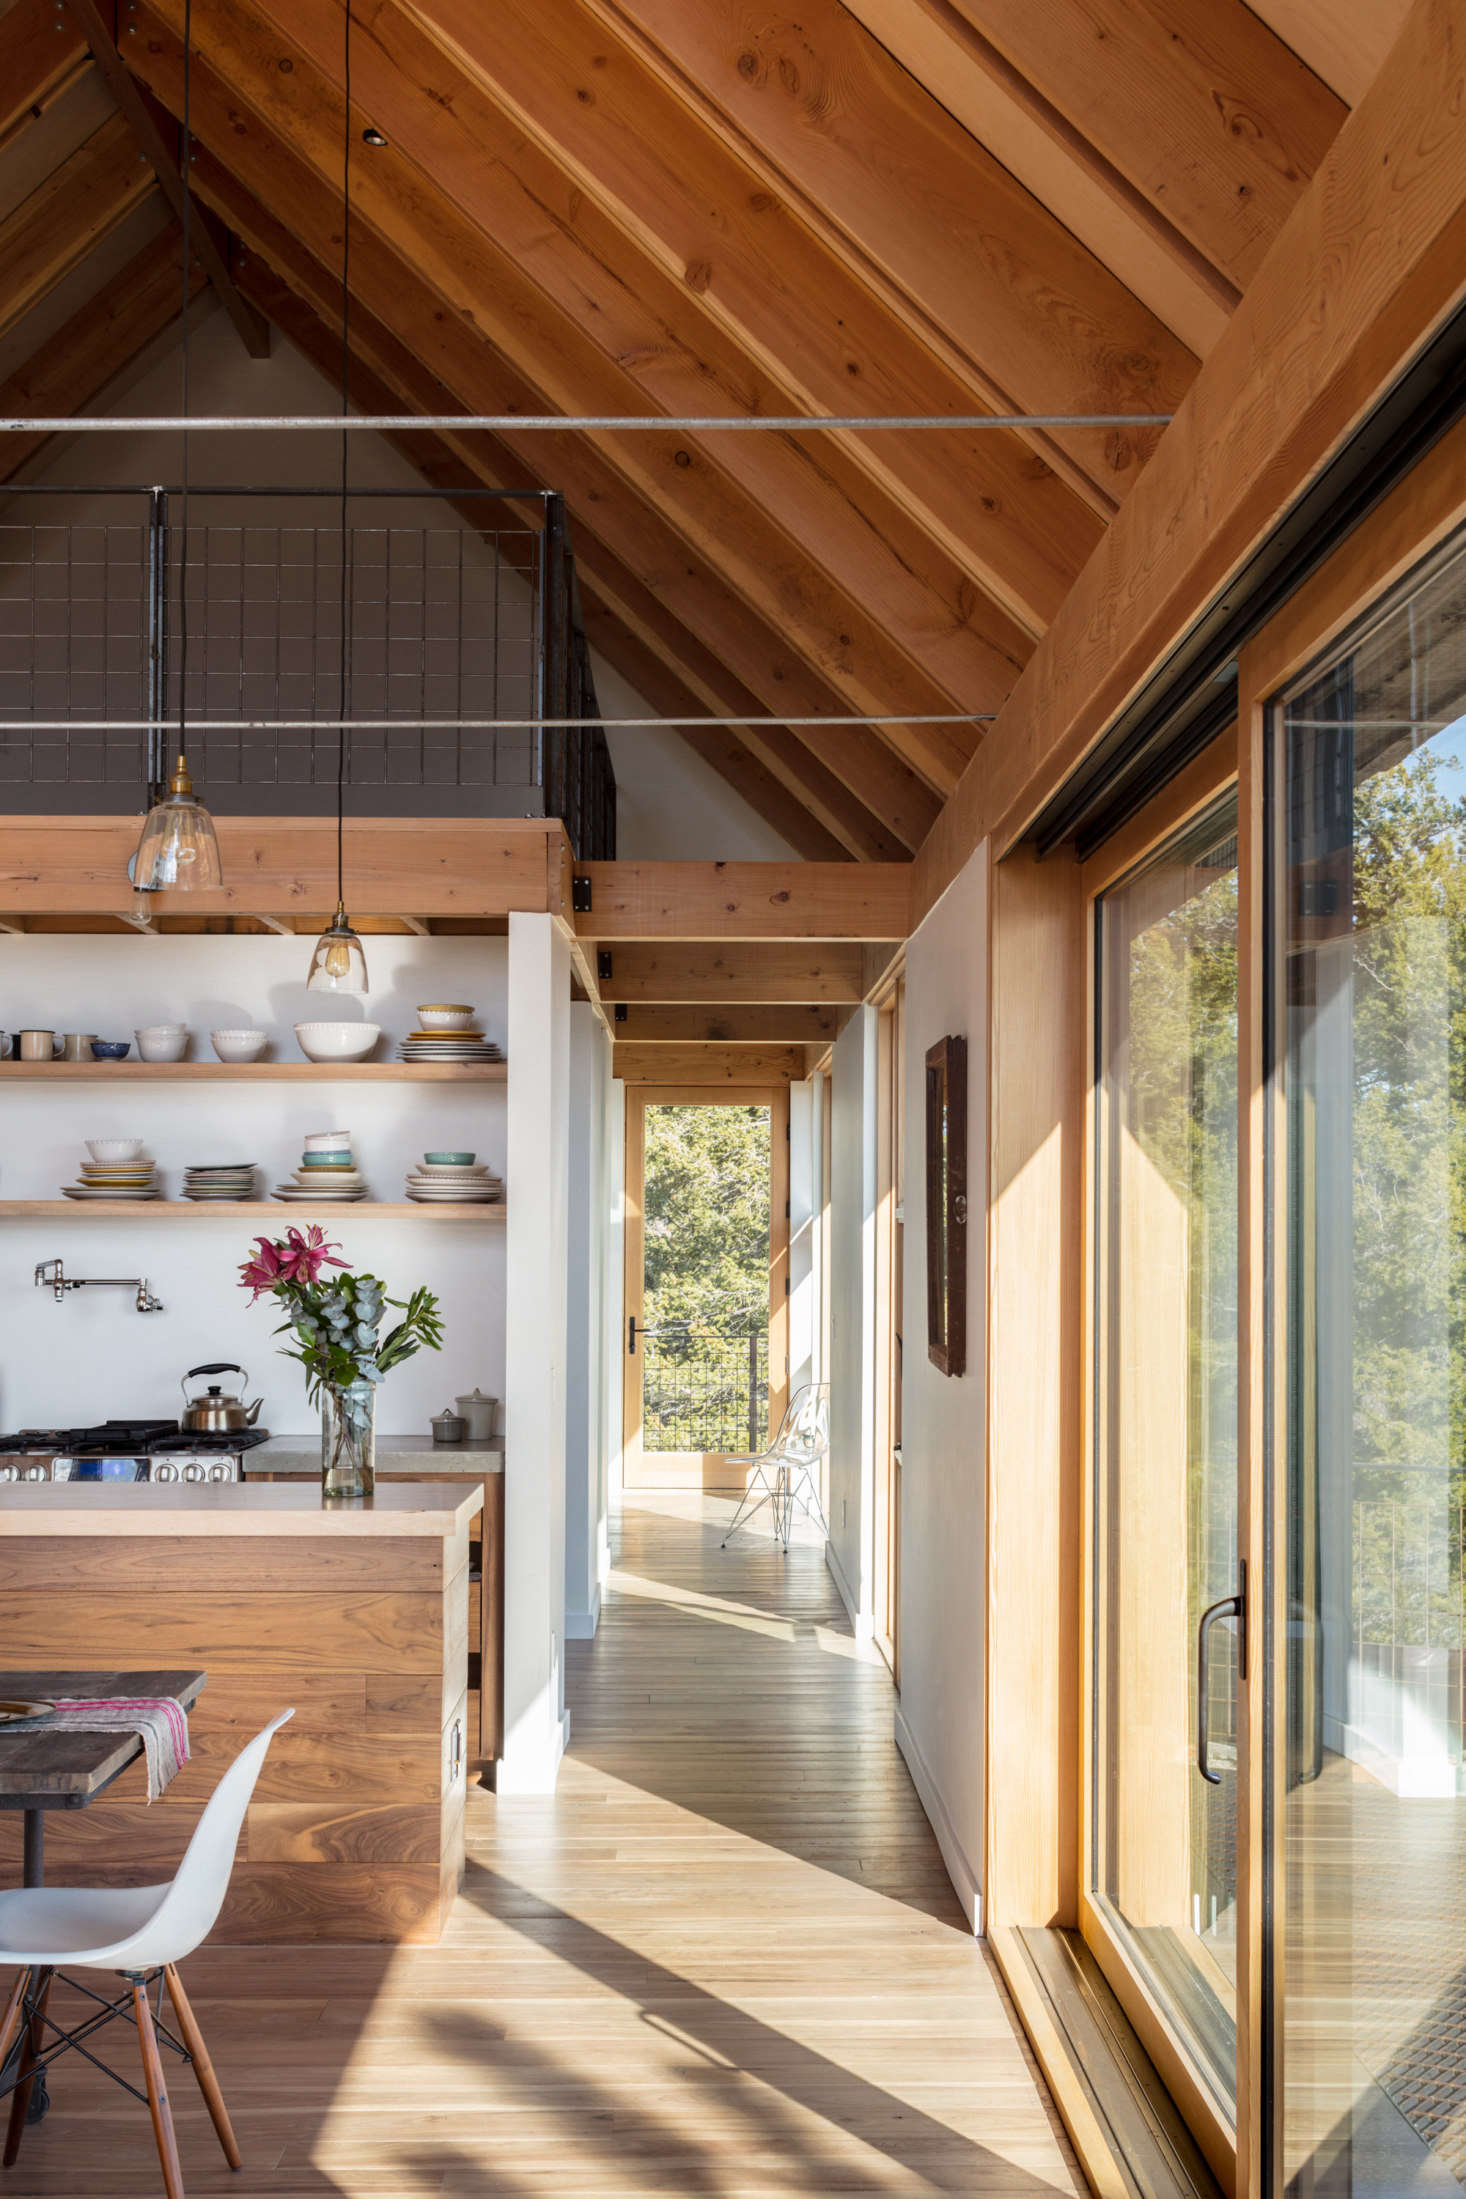 """The kitchen island has a John Boos butcher block counter and the sink counter is cast-in-place concrete. The loft's steel railing is enclosed with welded wire mesh: """"it's an inexpensive agricultural staple sold in sheets,"""" says del Gaudio. """"The version we used has four-inch squares—they can't be any bigger to pass code."""""""